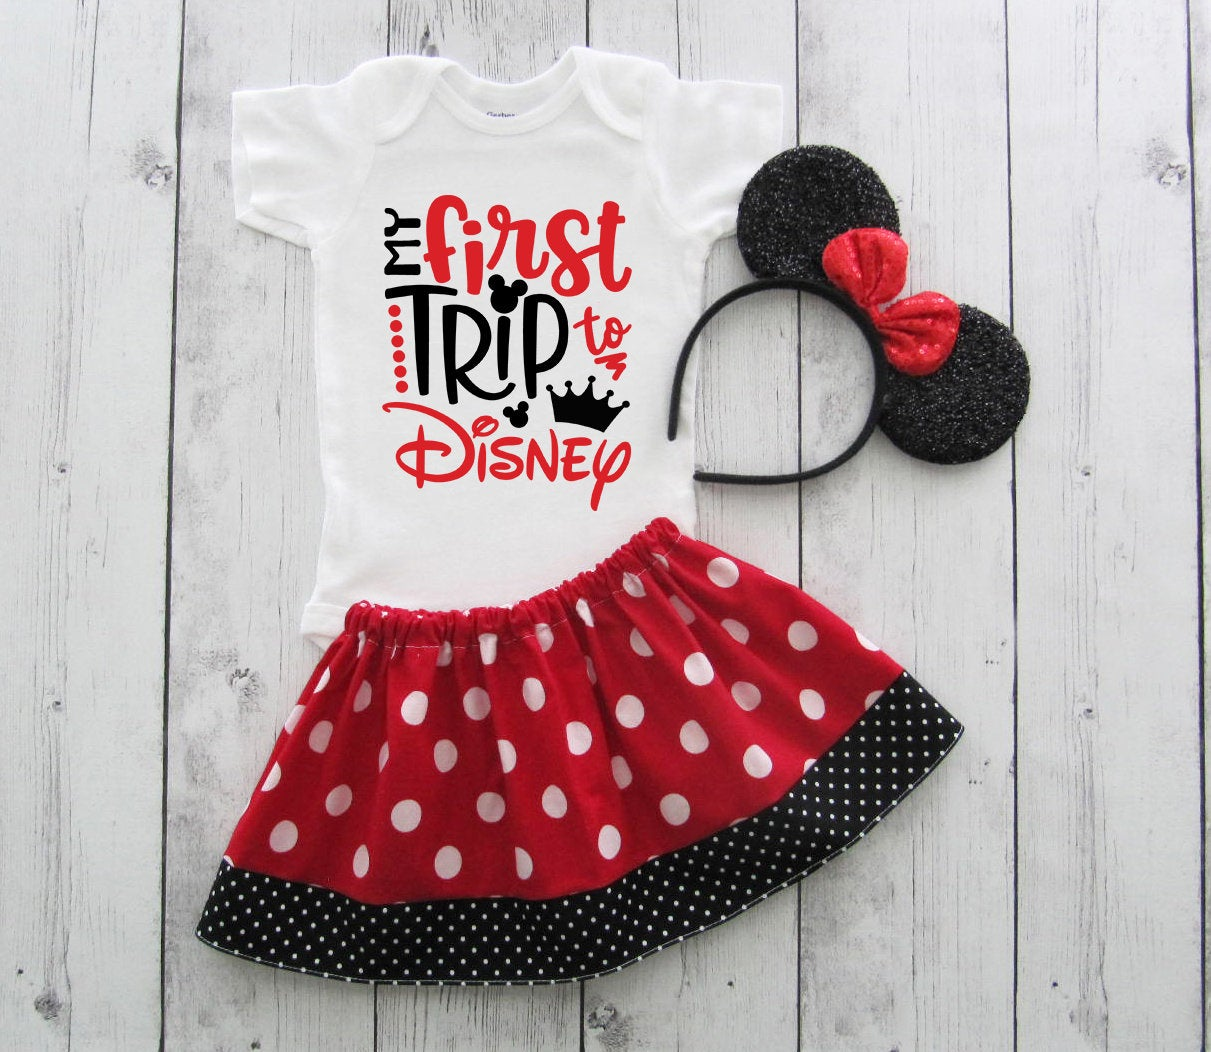 My First Disney Trip Outfit for Girl in Minnie Mouse red and black polka dots - red minnie ears, first disney trip shirt girl,